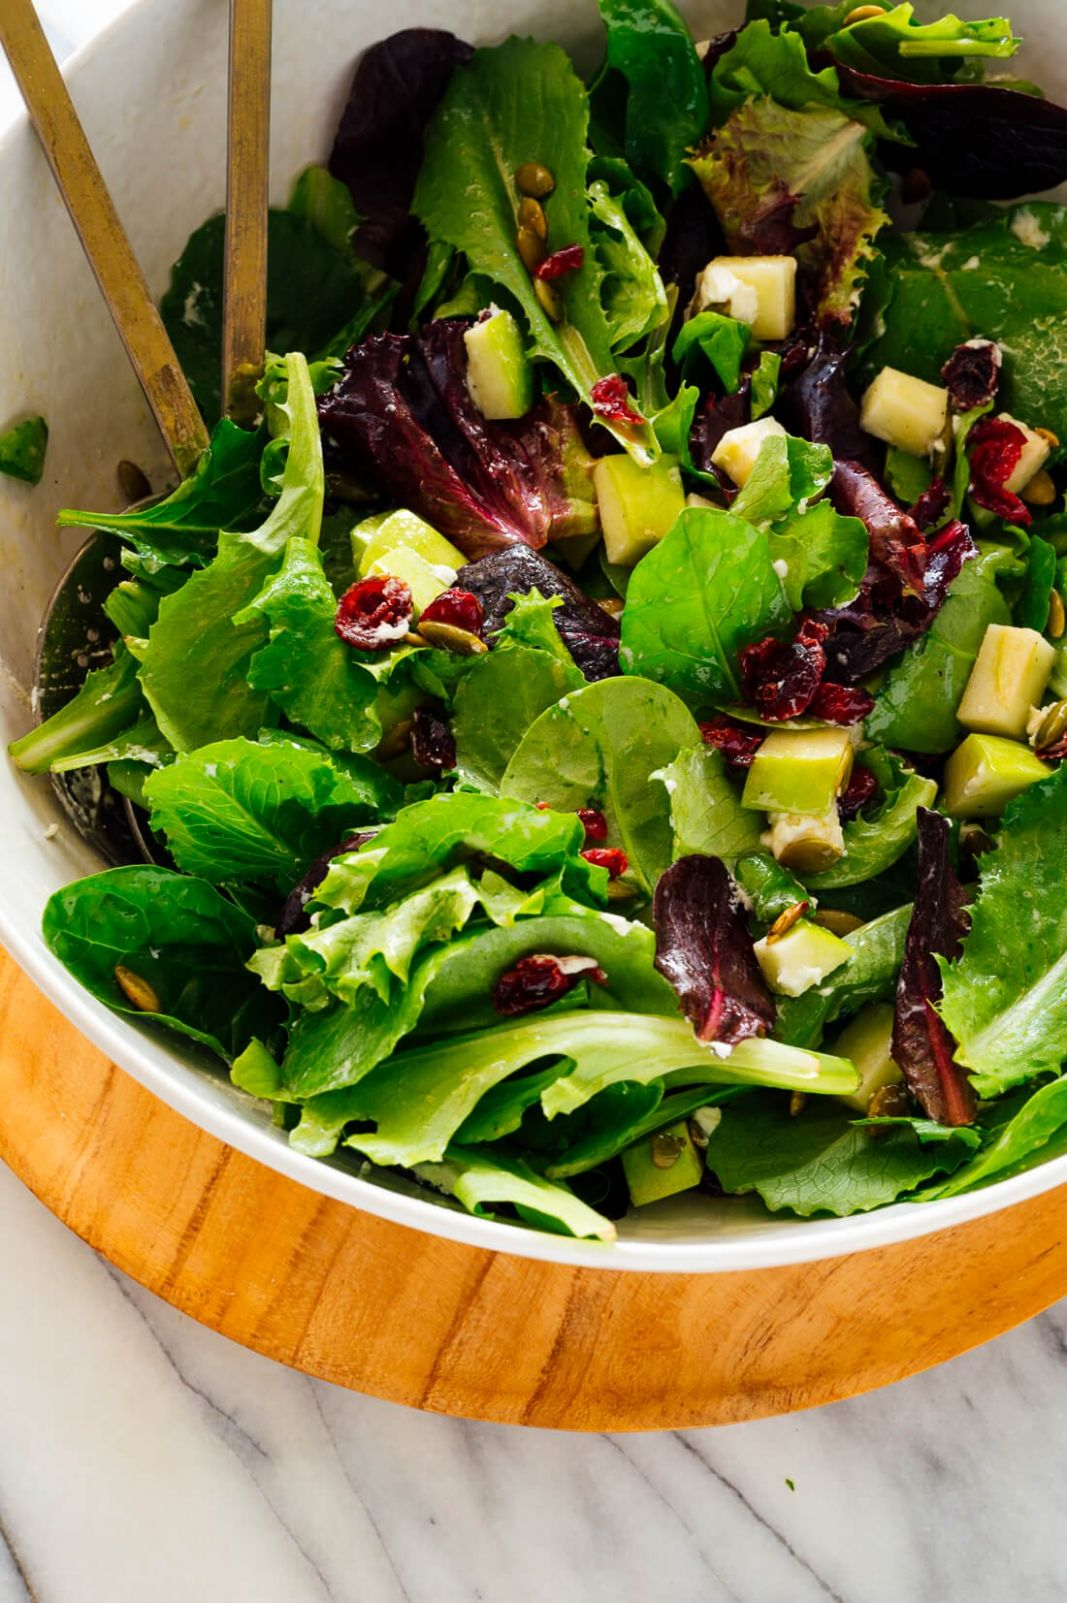 Favorite Green Salad with Apples, Cranberries and Pepitas - Salad Recipes Green